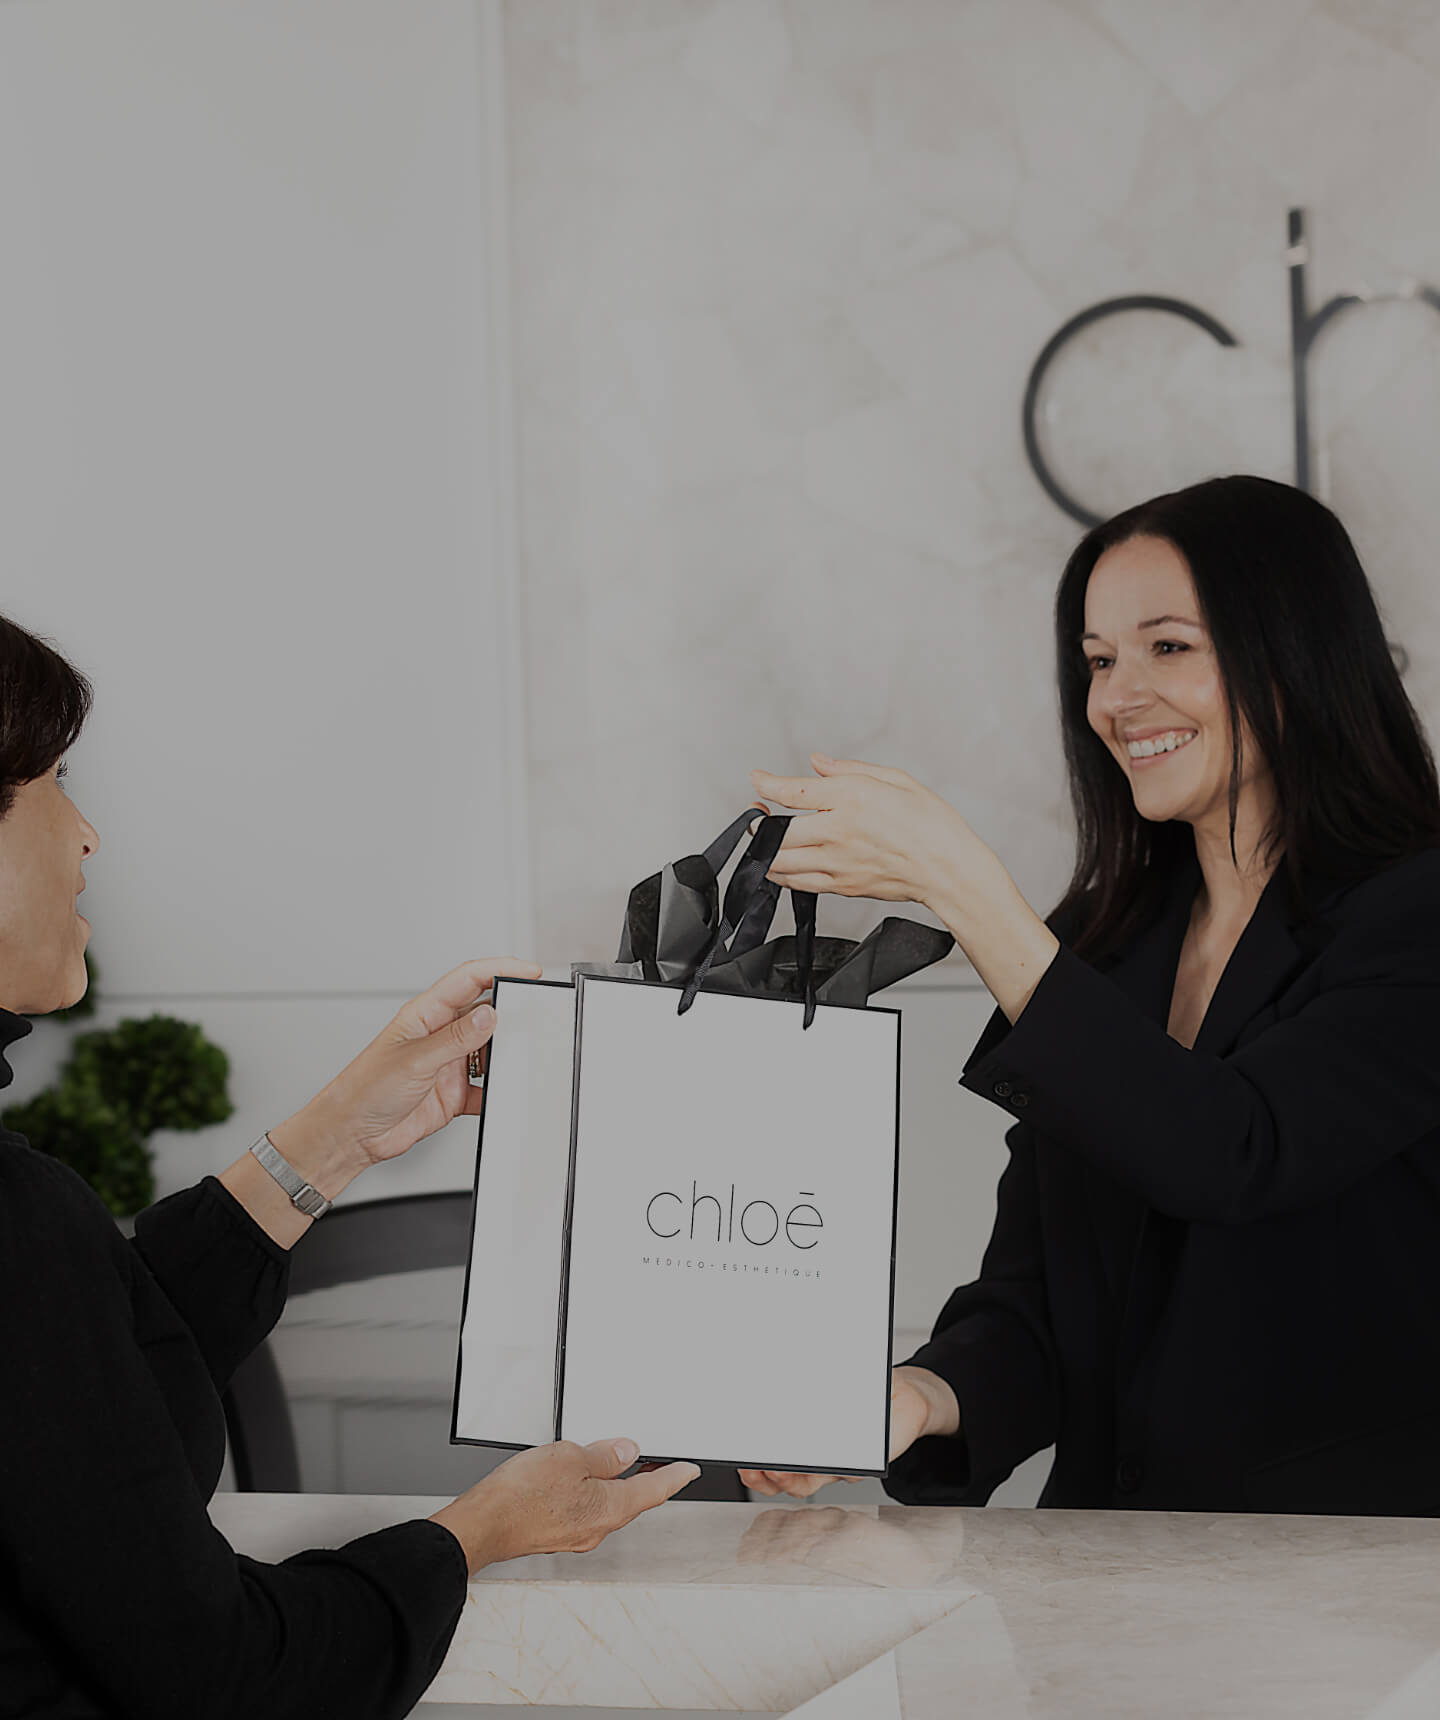 Medical receptionist Guylaine Lavoie giving a Clinique Chloé gift bag to a patient